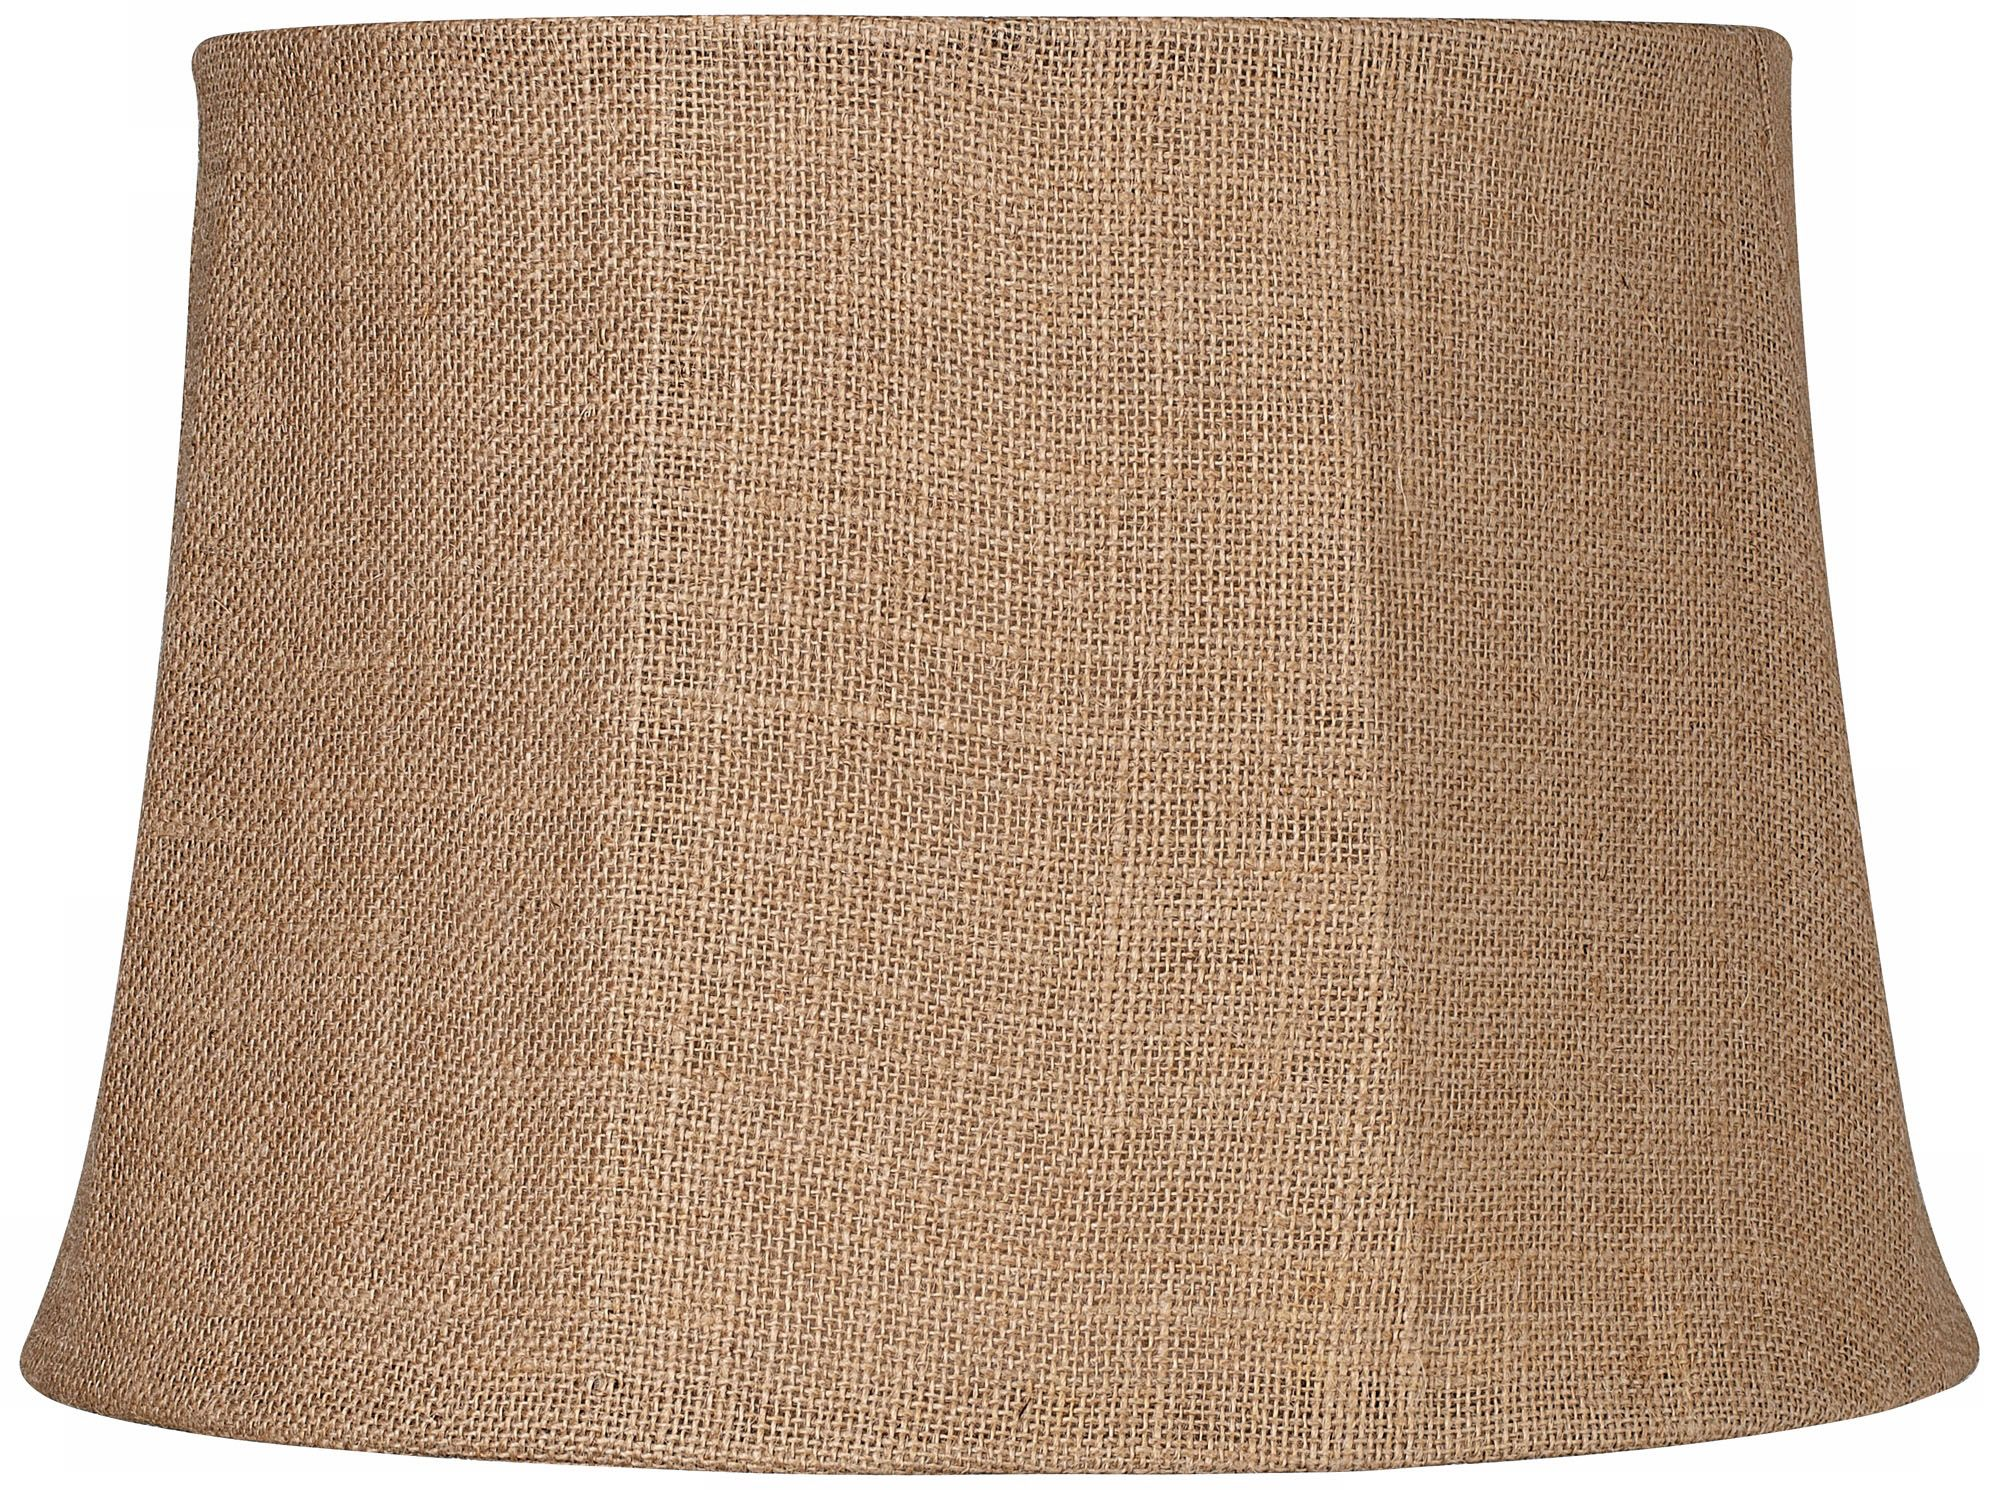 Natural Burlap Large Drum Lamp Shade 13x16x11 (Spider)